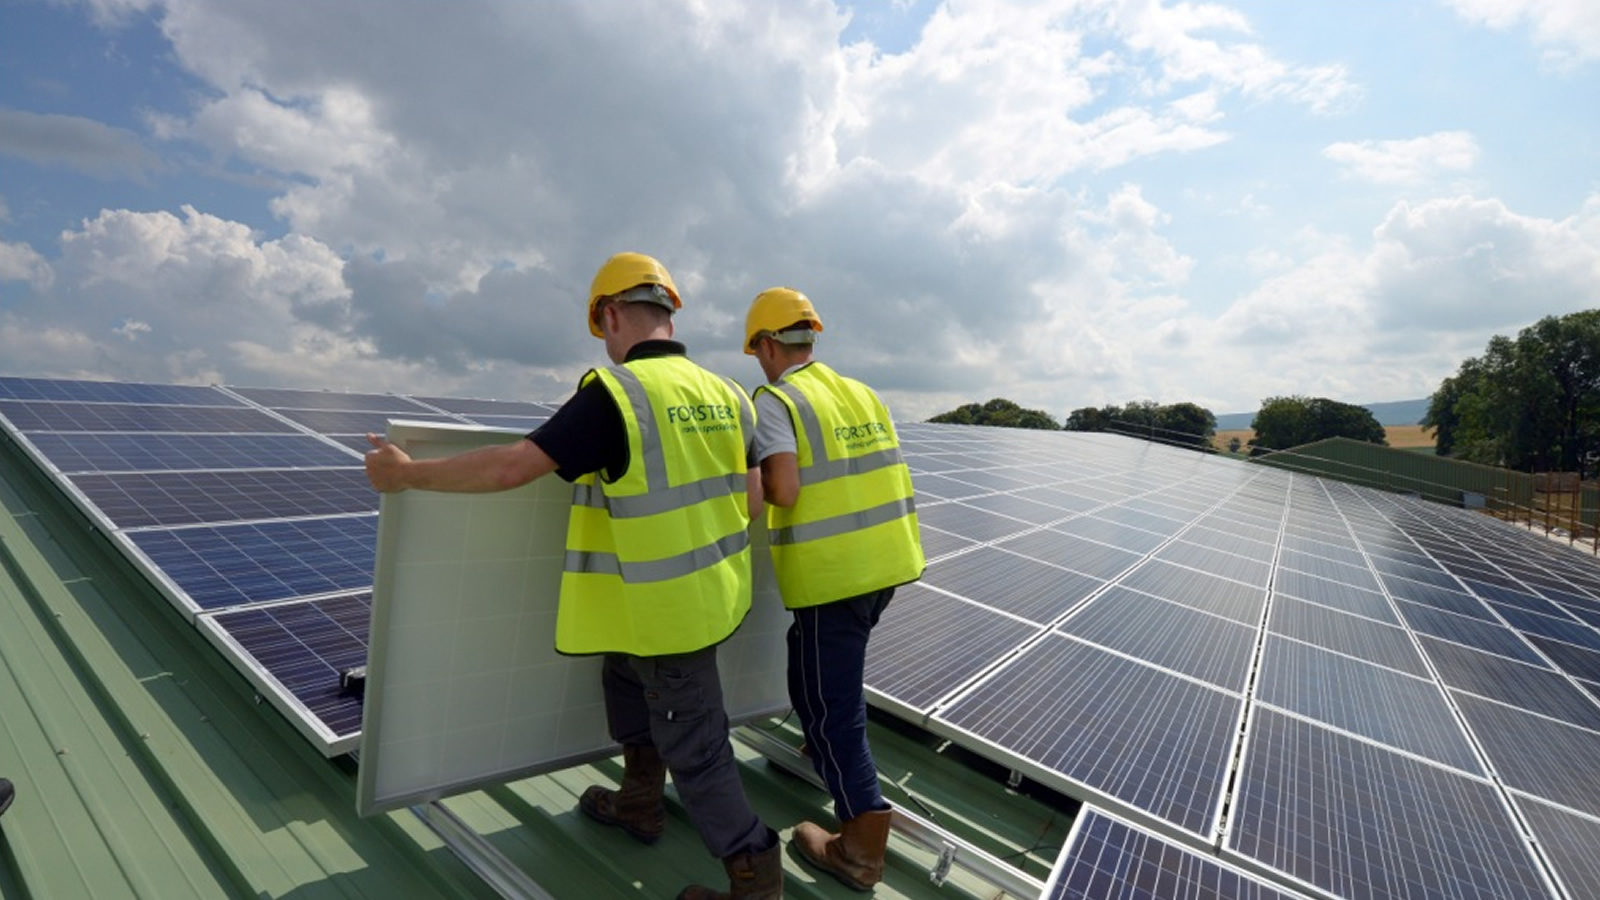 <h4>Stand Up For Solar</h4><h5>We're working in 20 states to defend local and state progress on solar.</h5><em>Solar Trade Association CC BY-SA 2.0</em>